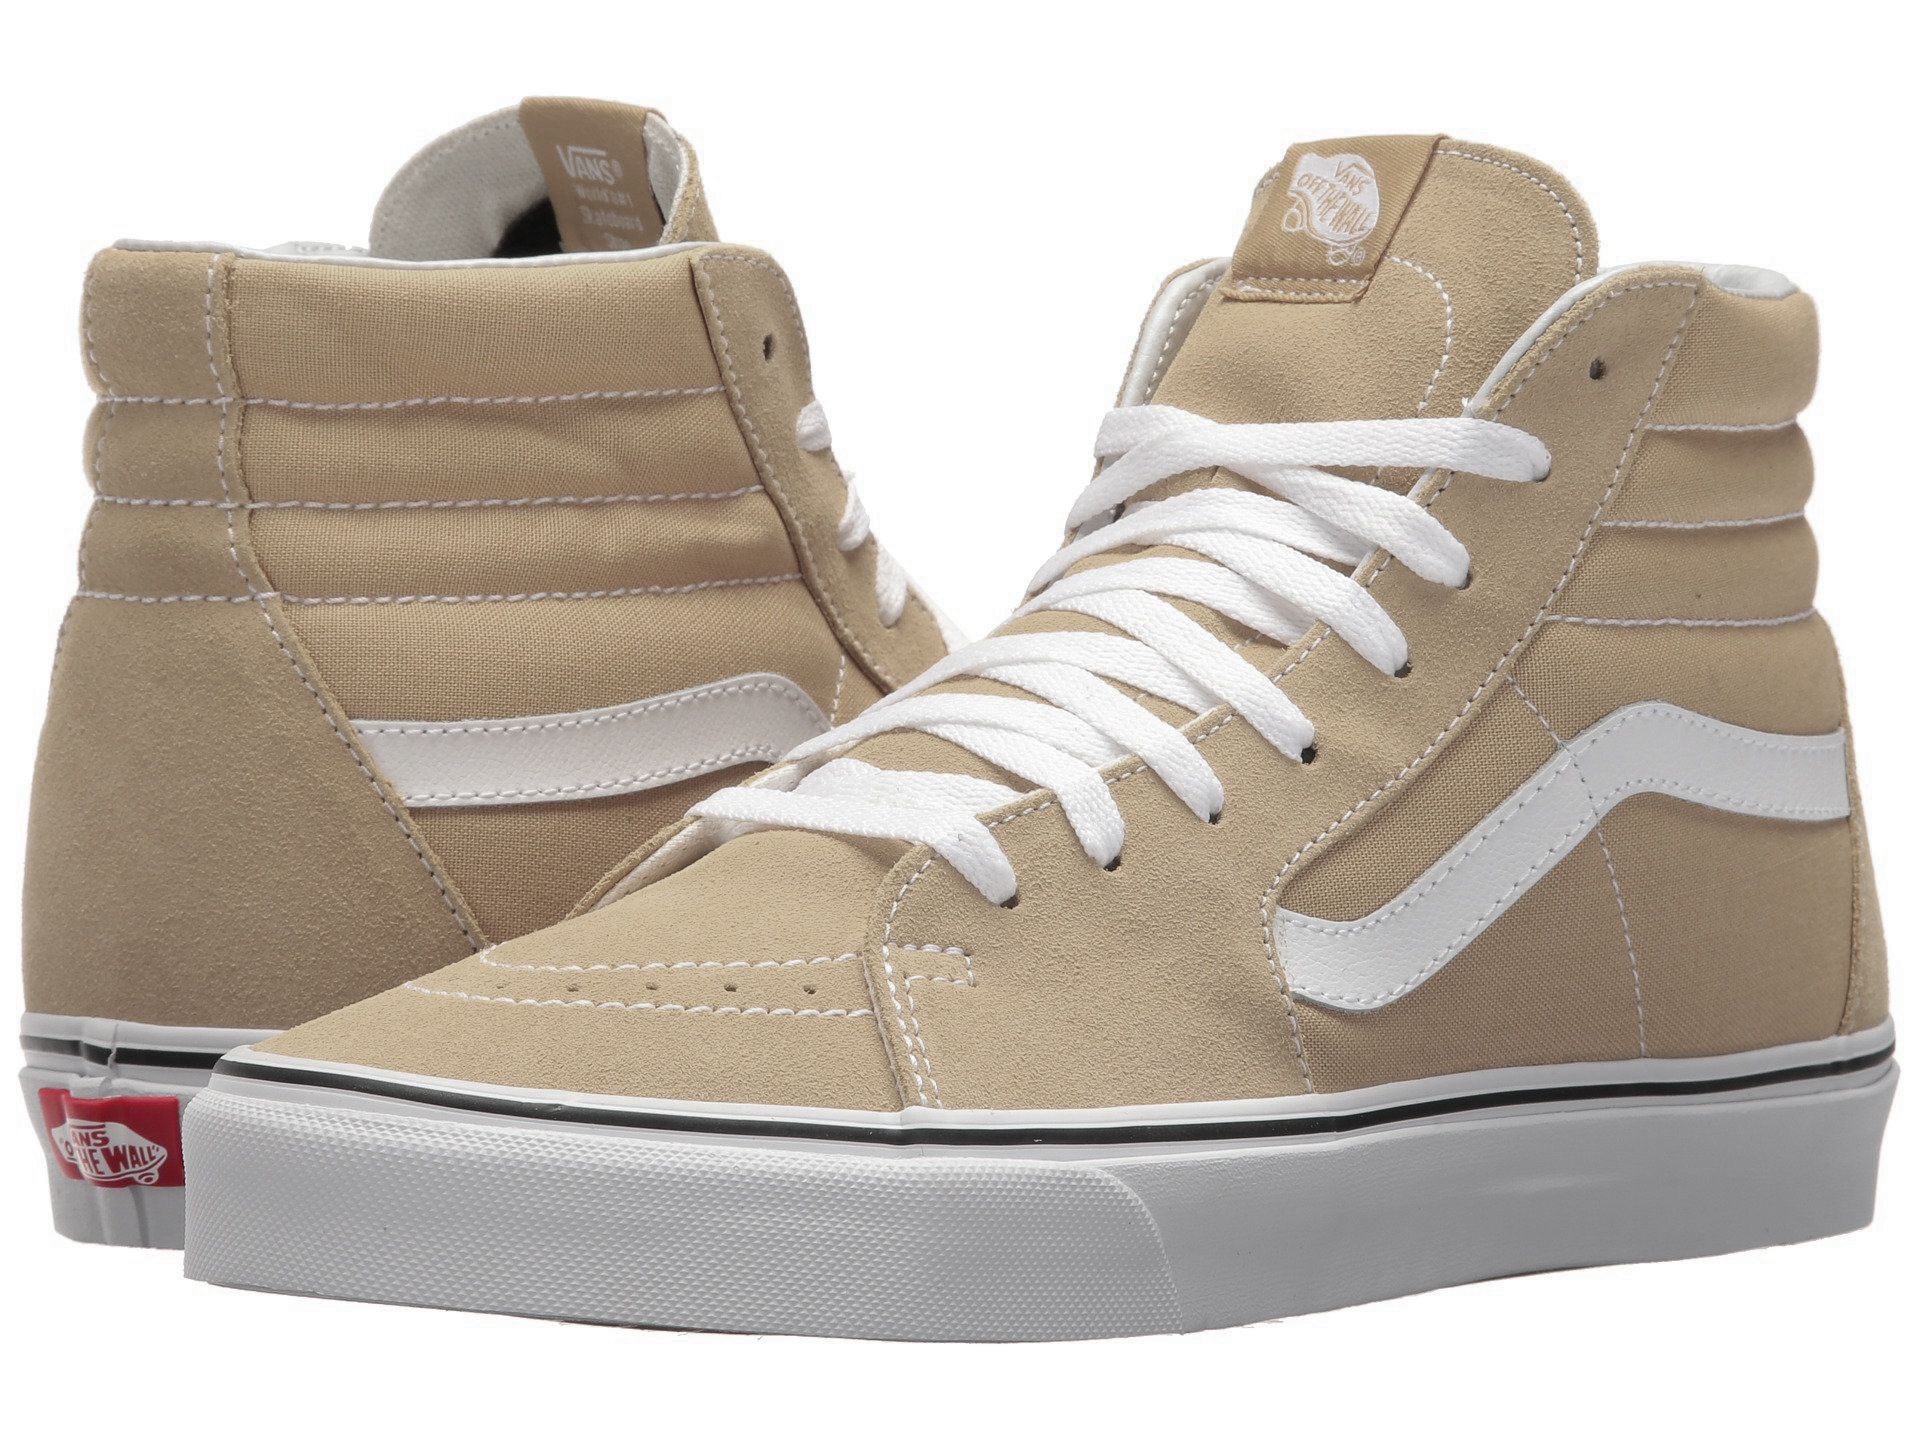 30f6bbc786 Keep it old school every step of the way with the classic Vans SK8-Hi.